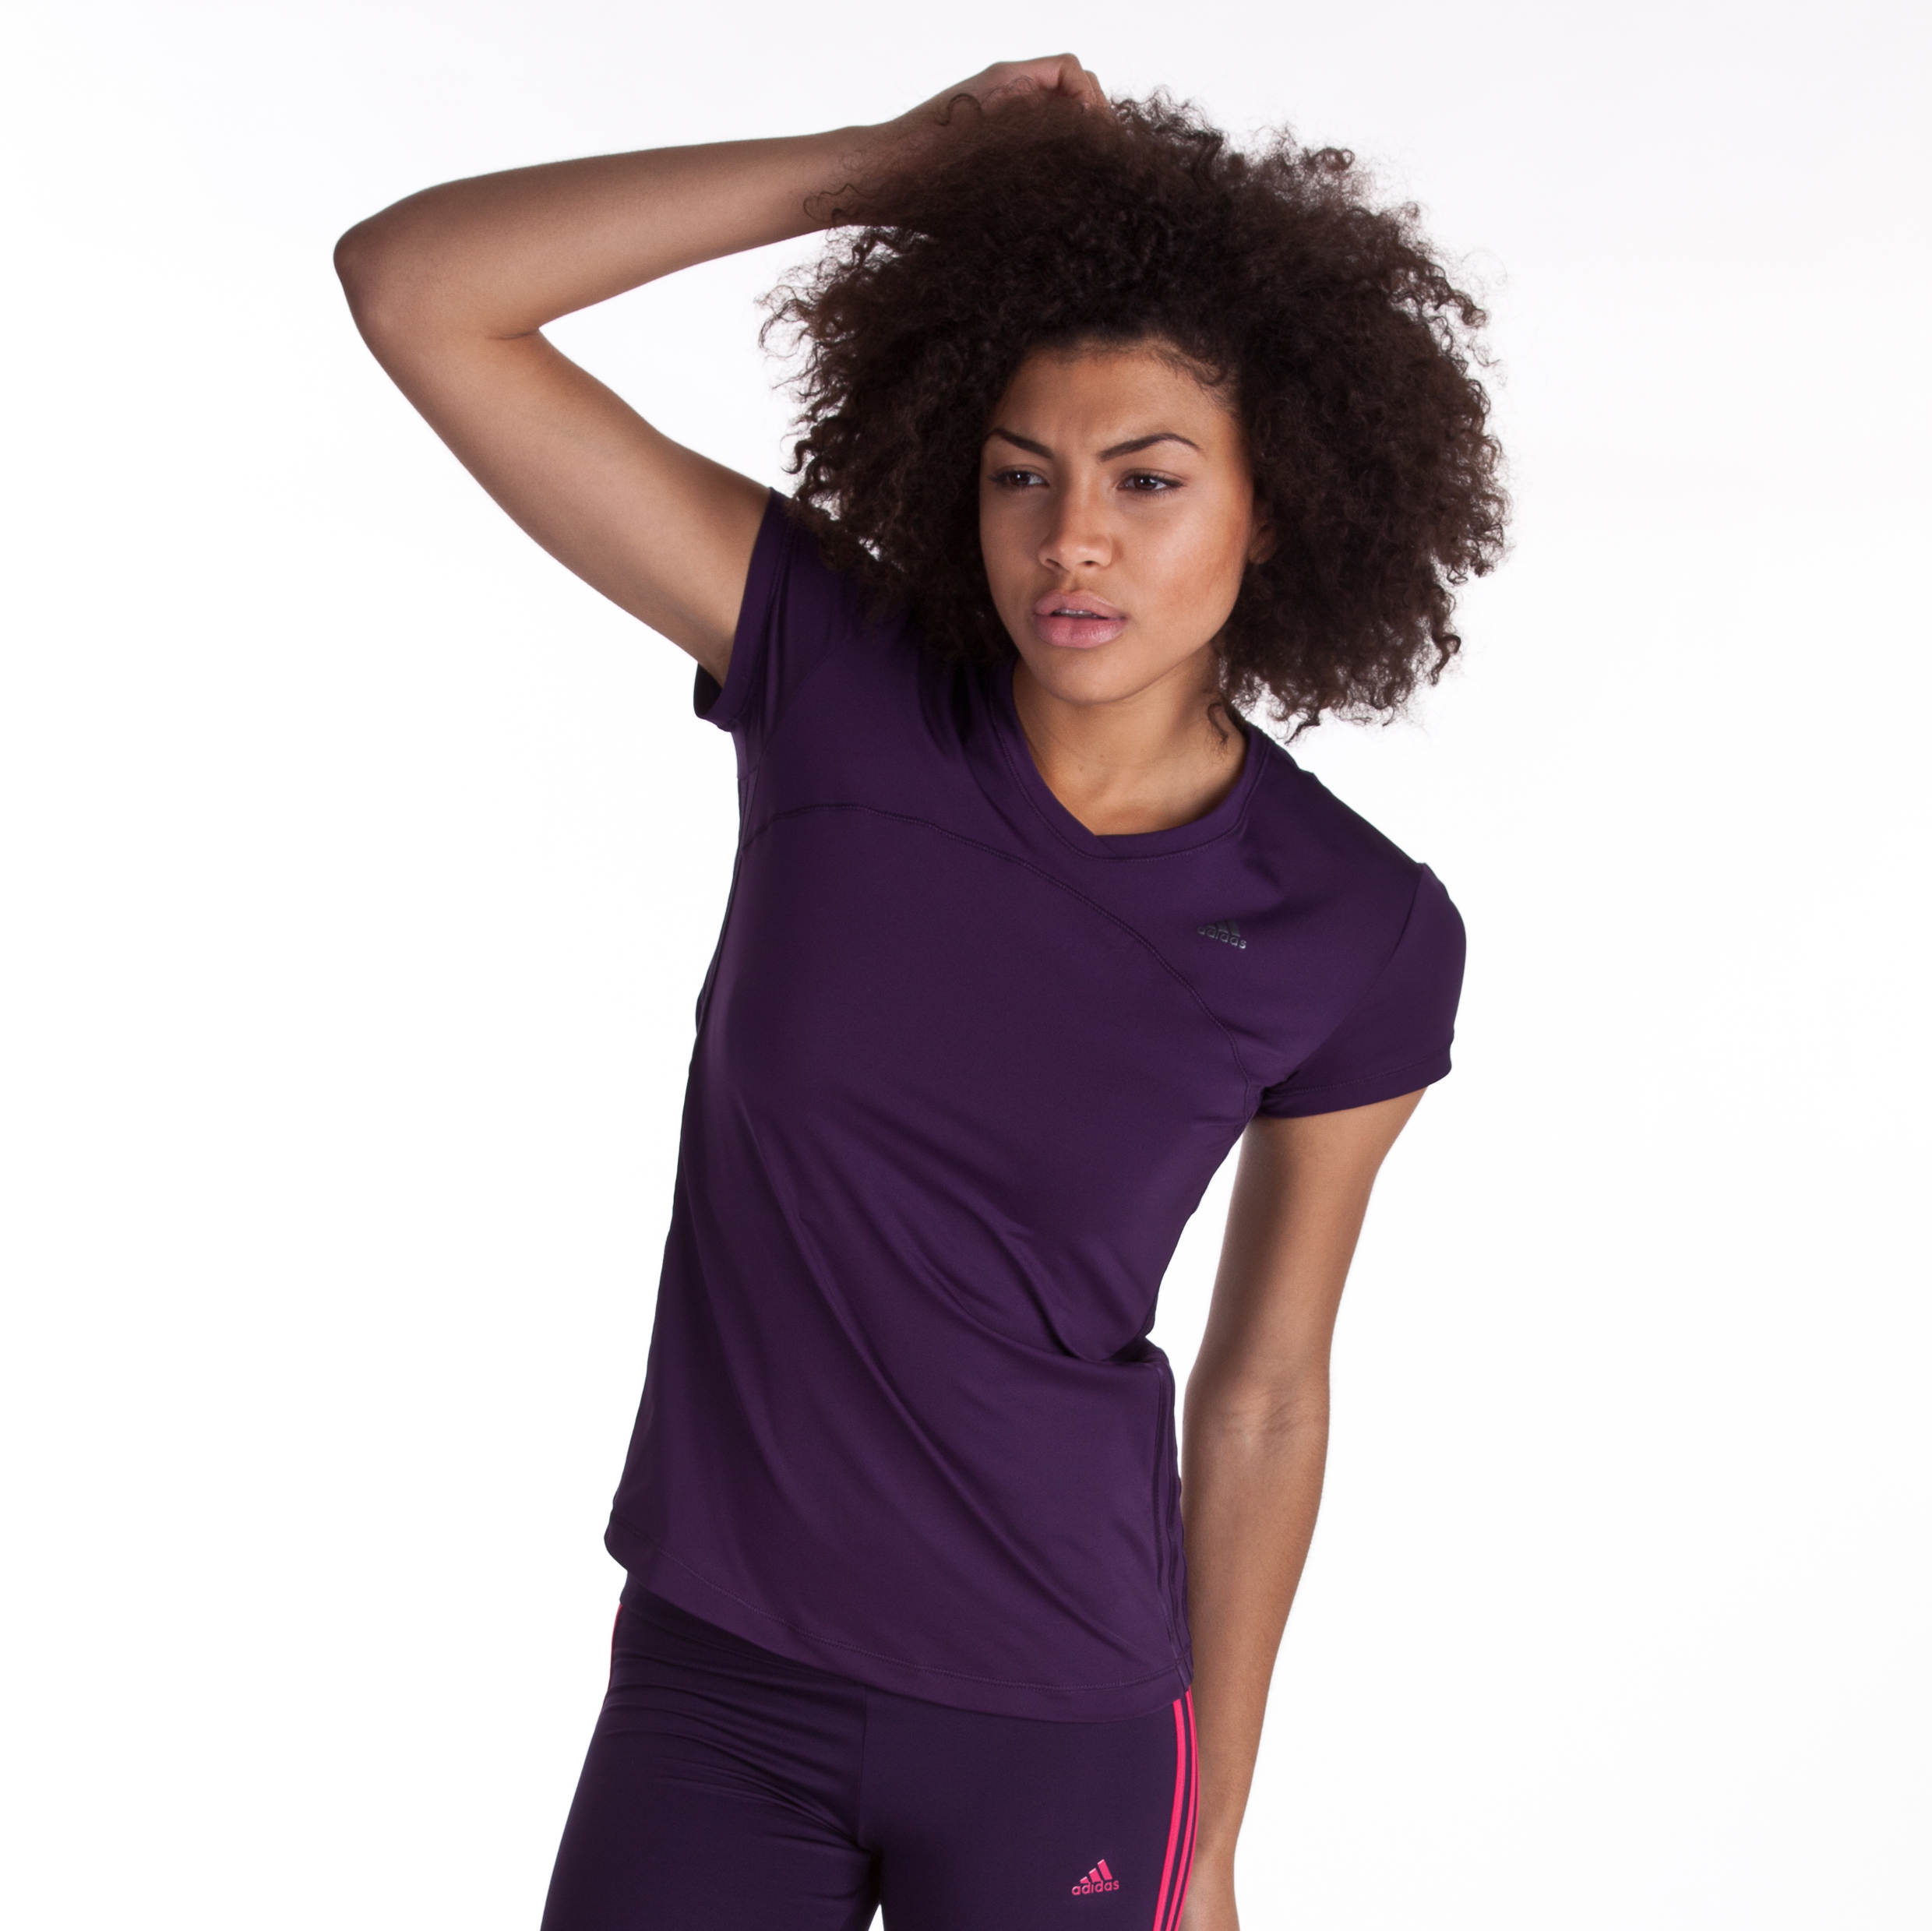 Adidas Climacool Training Core T-Shirt - Purple - Womens